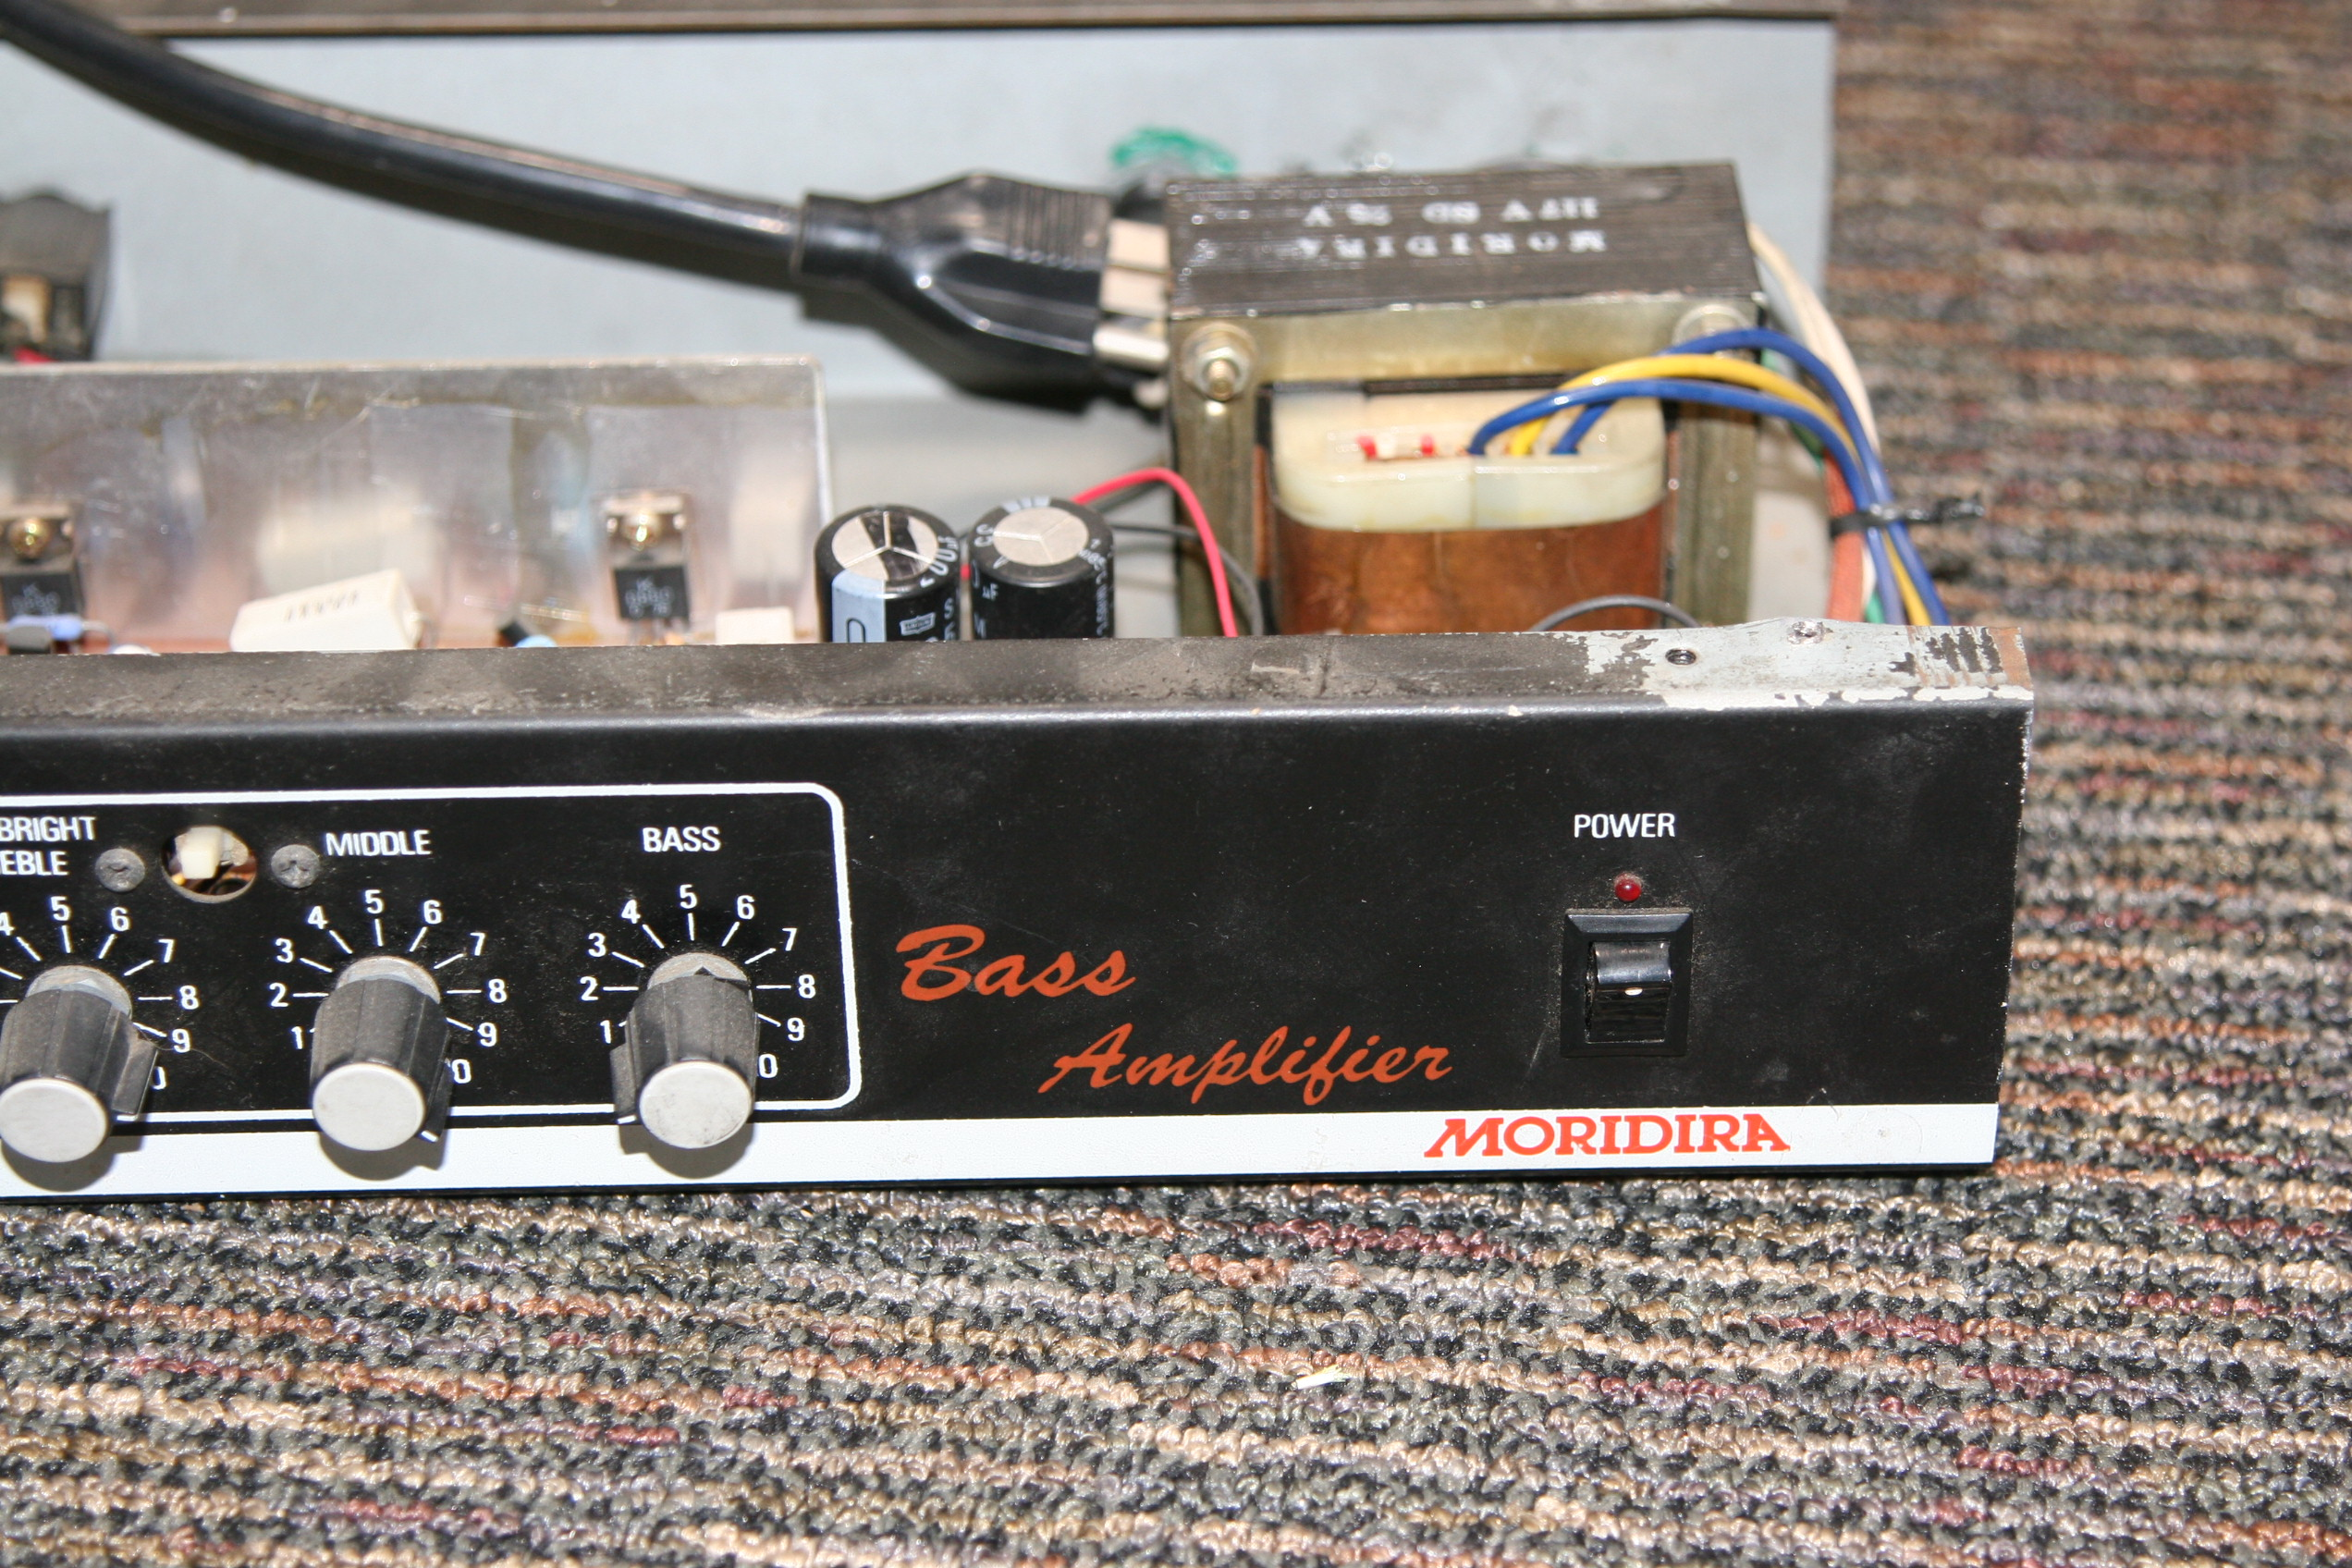 Bass Amp Chassis